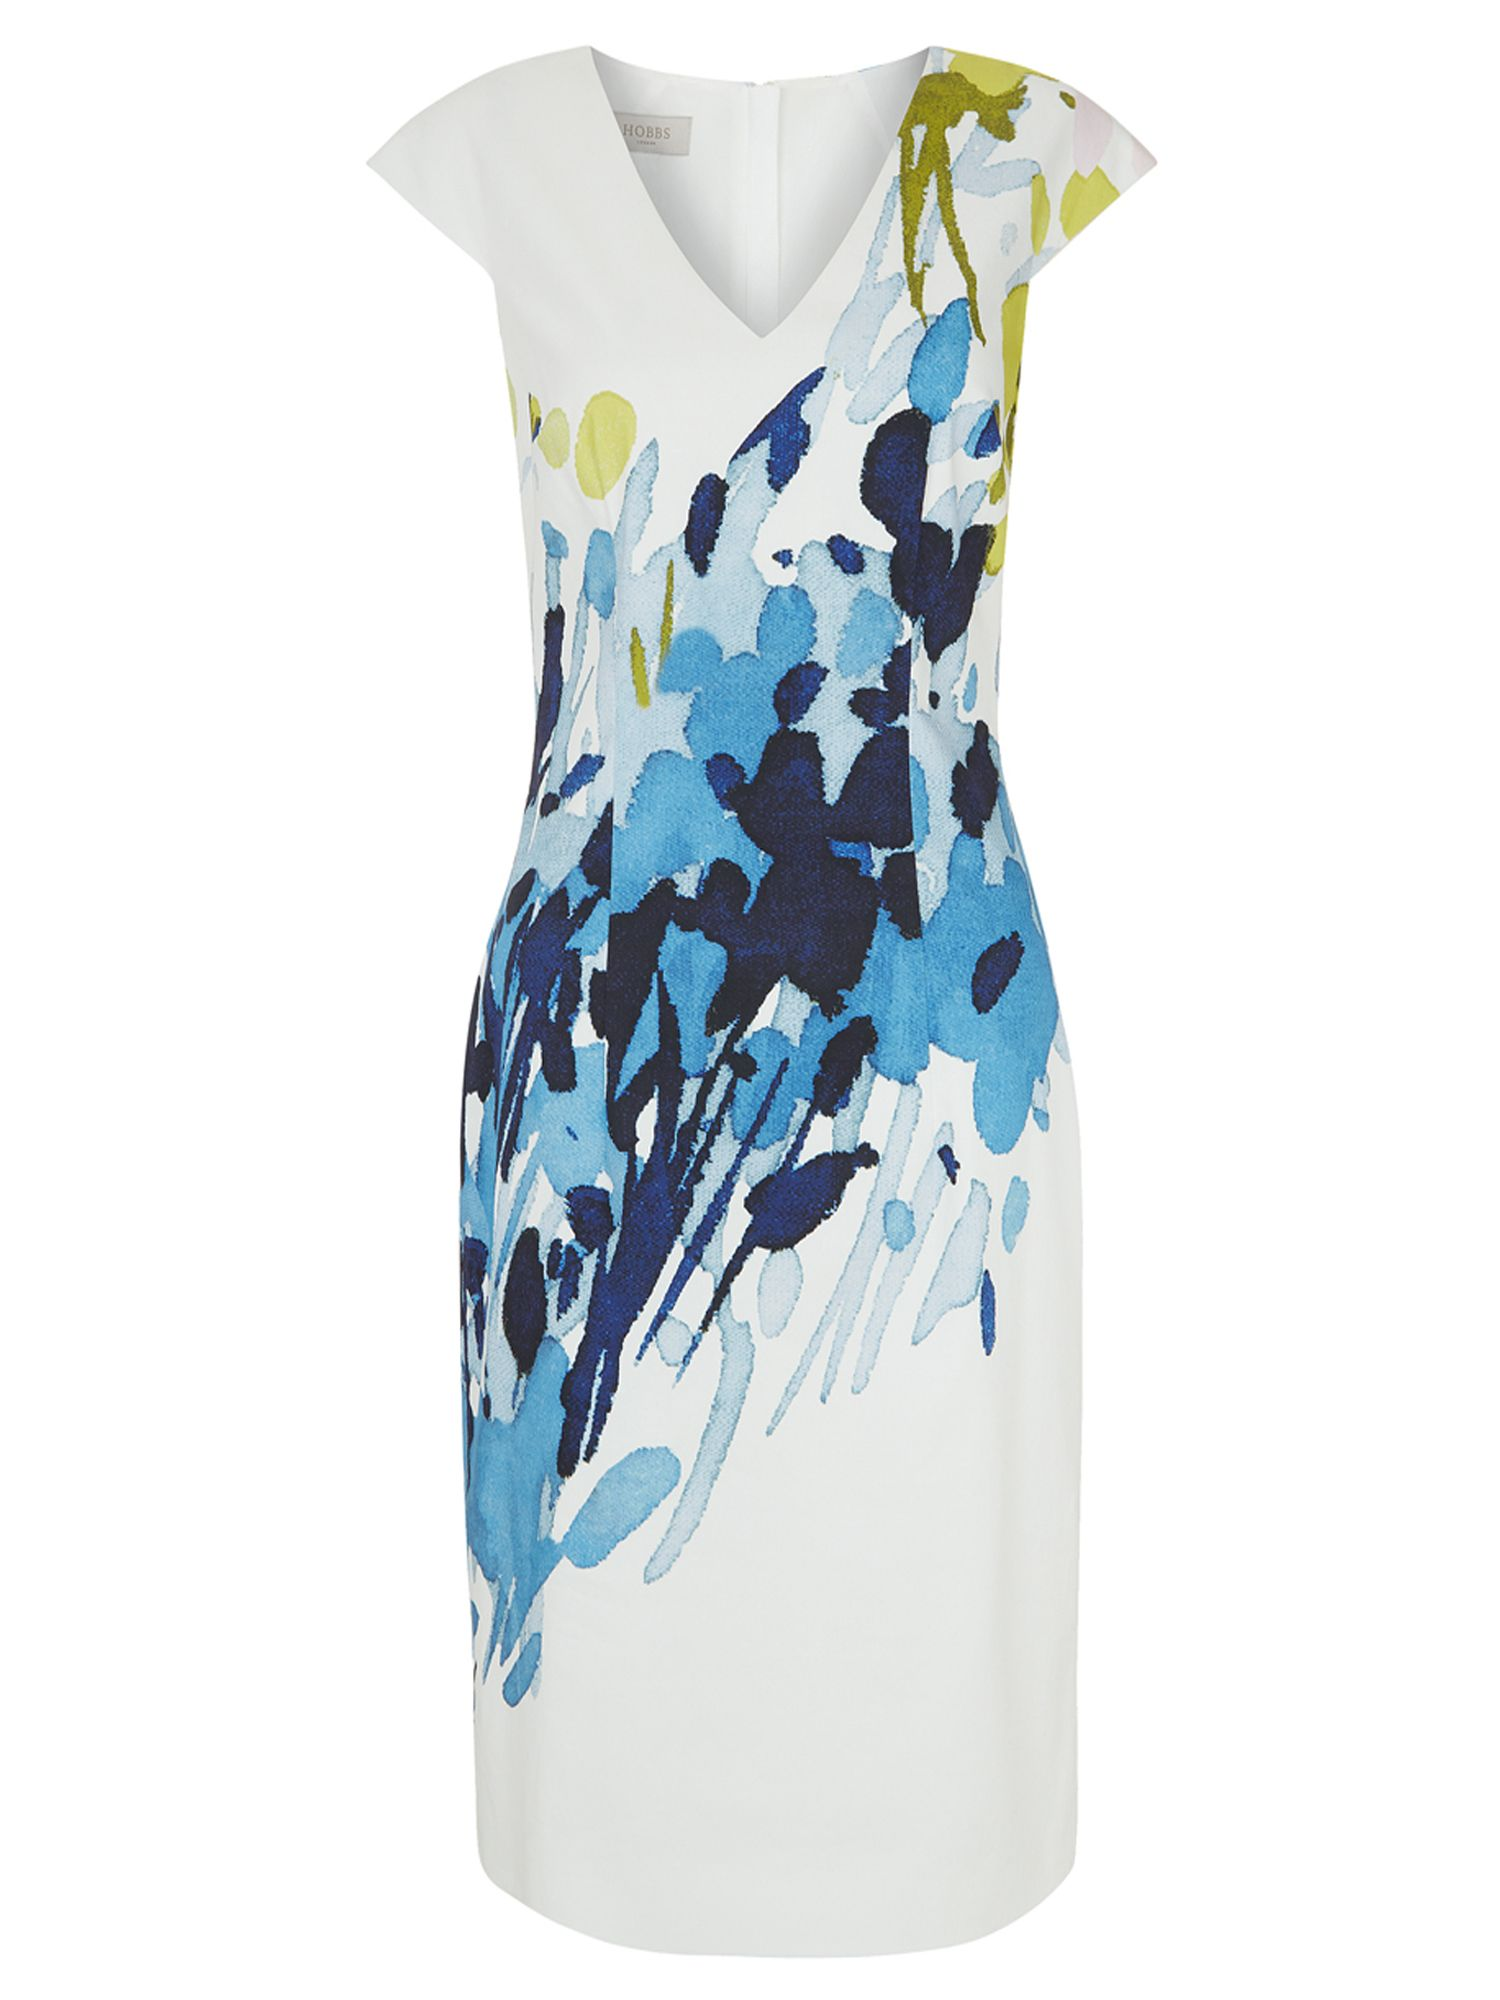 Hobbs Jennifer Dress, Multi-Coloured